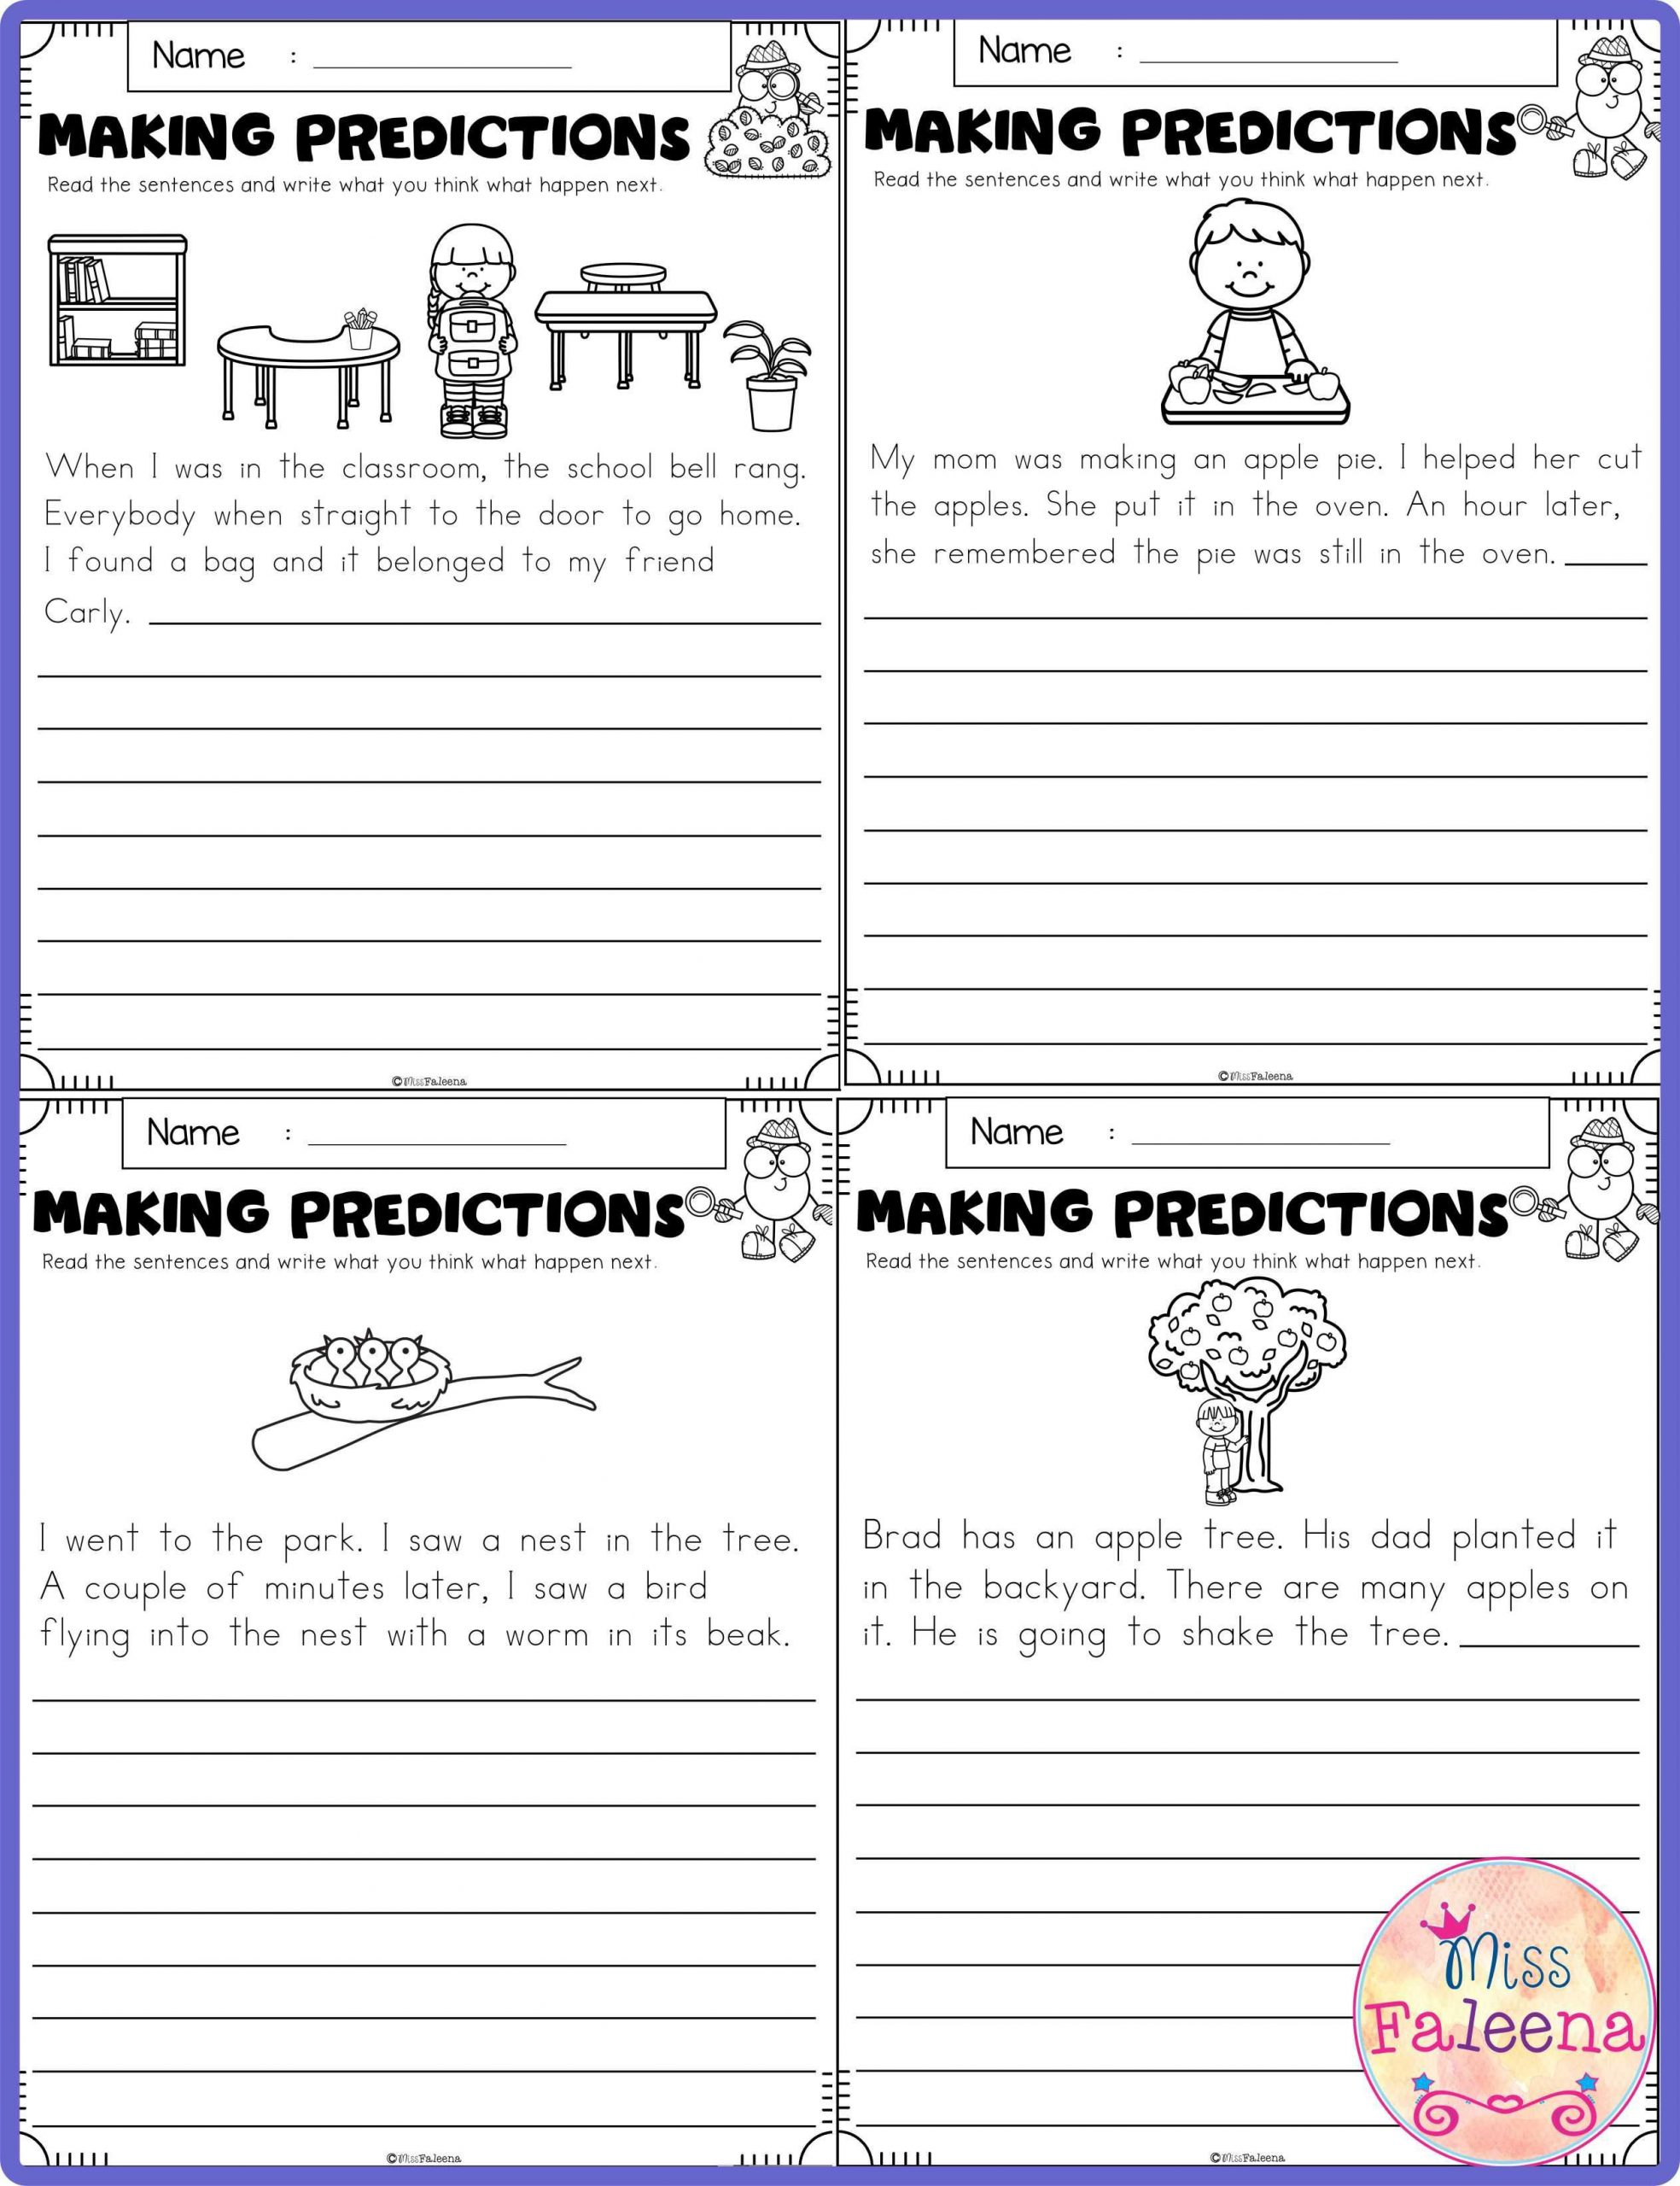 Making Predictions Worksheets 3rd Grade September Making Predictions In 2020 with Images